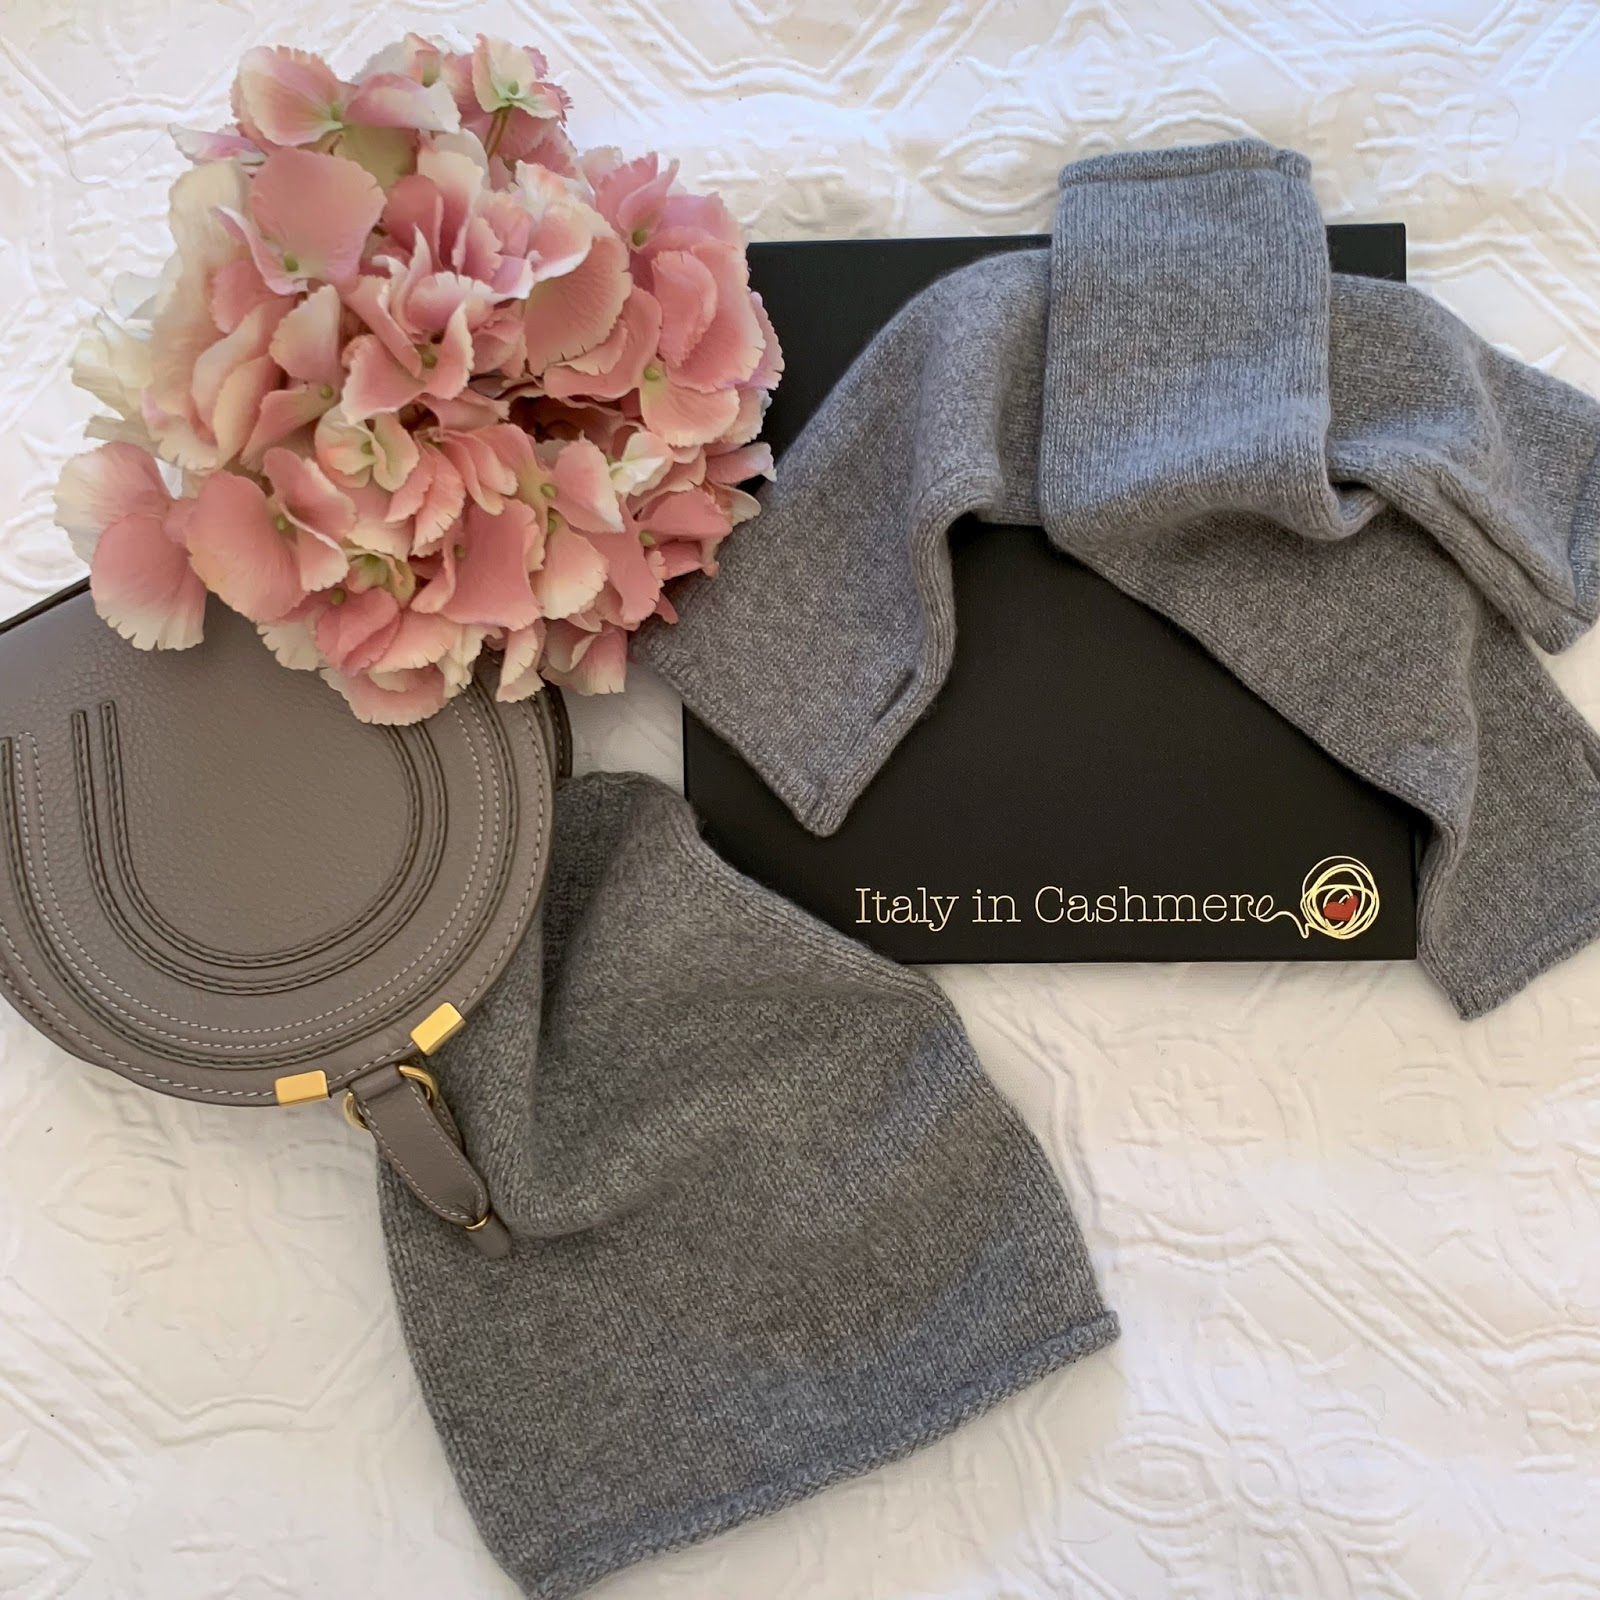 my midlife fashion, italy in cashmere, italy in cashmere pure cashmere knitted slouchy beanie, italy in cashmere light grey pure cashmere fingerless long wrist warmer gloves